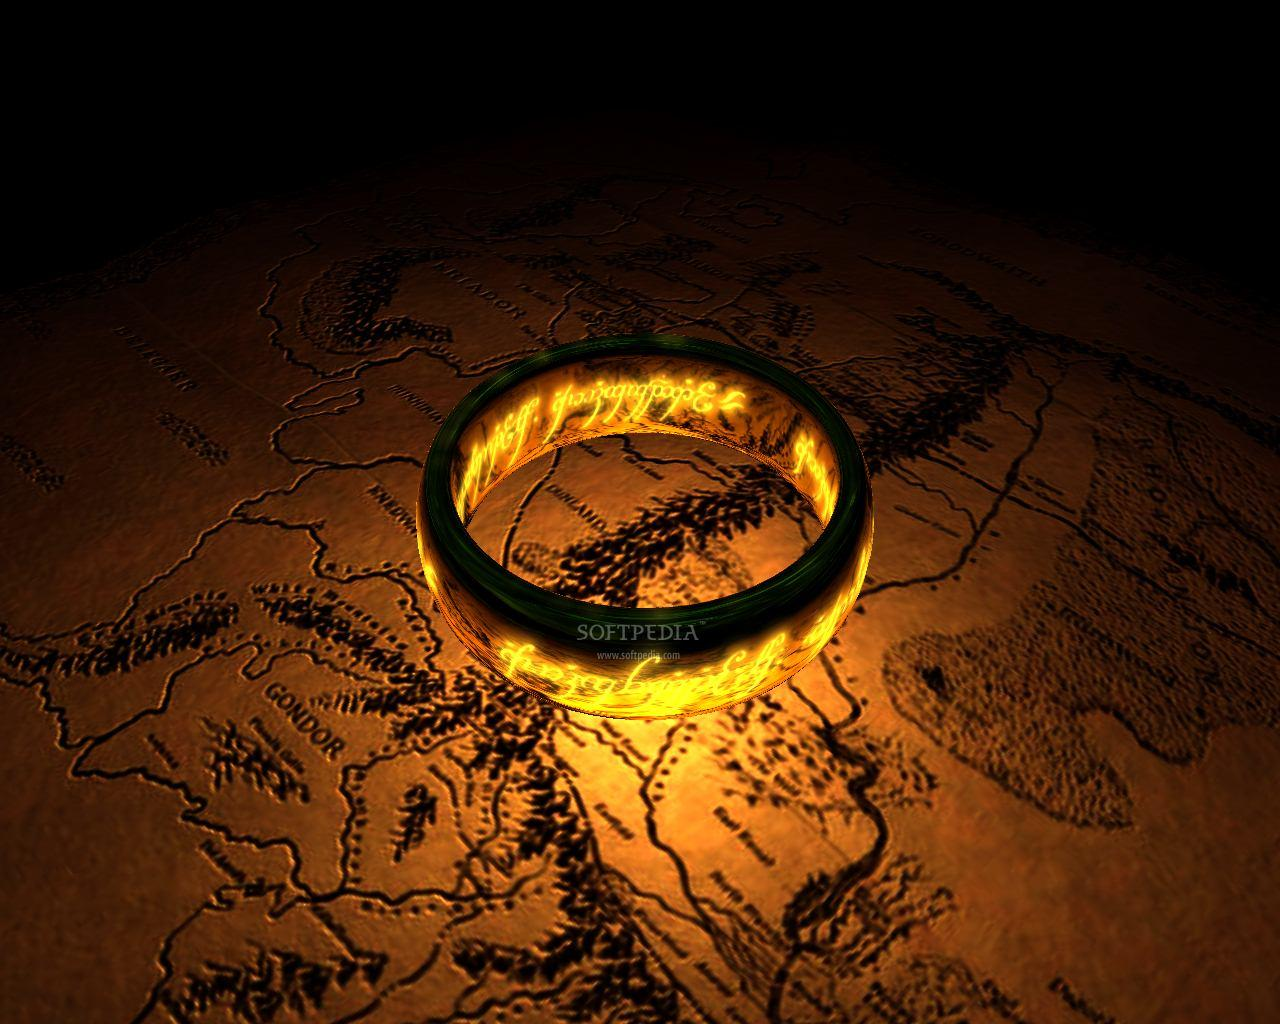 Iphone Wallpaper Lord Of The Rings